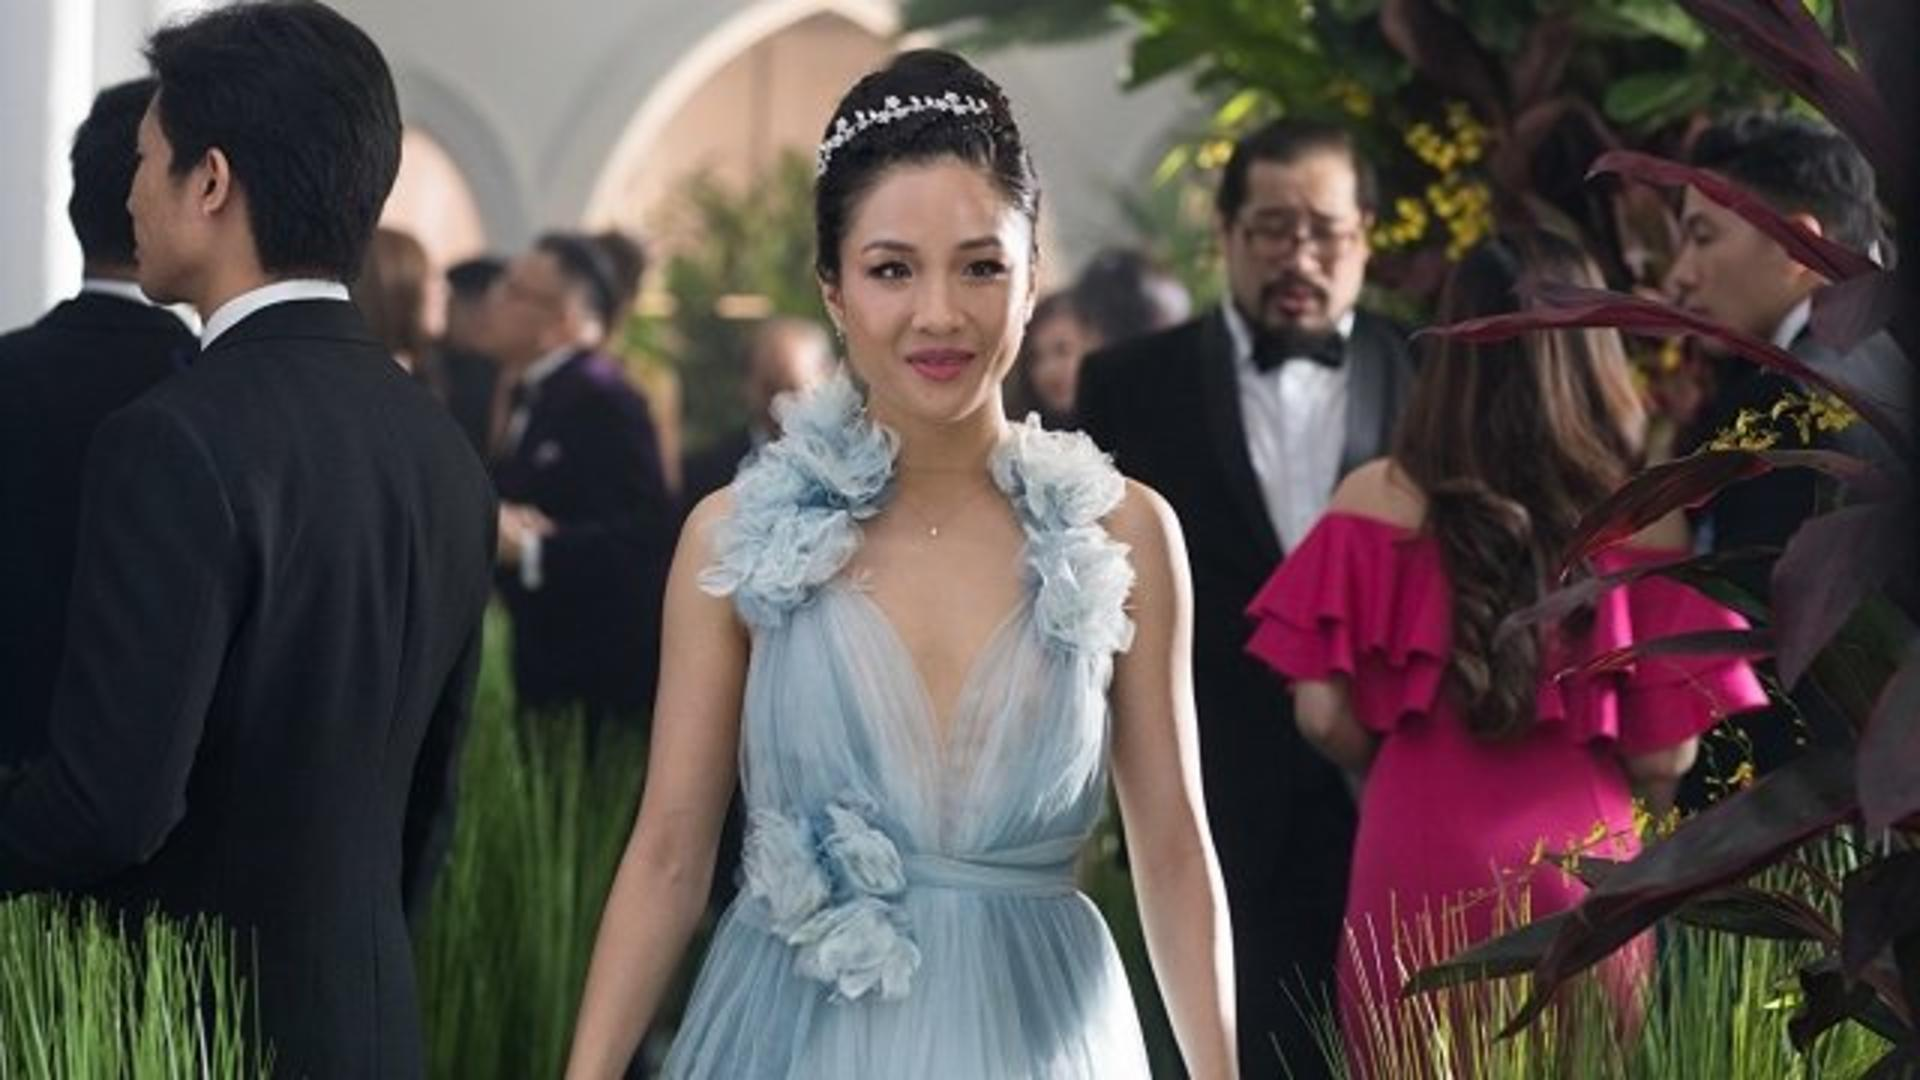 Constance Wu's Iconic 'Crazy Rich Asians' Dress To Be Featured In Smithsonian